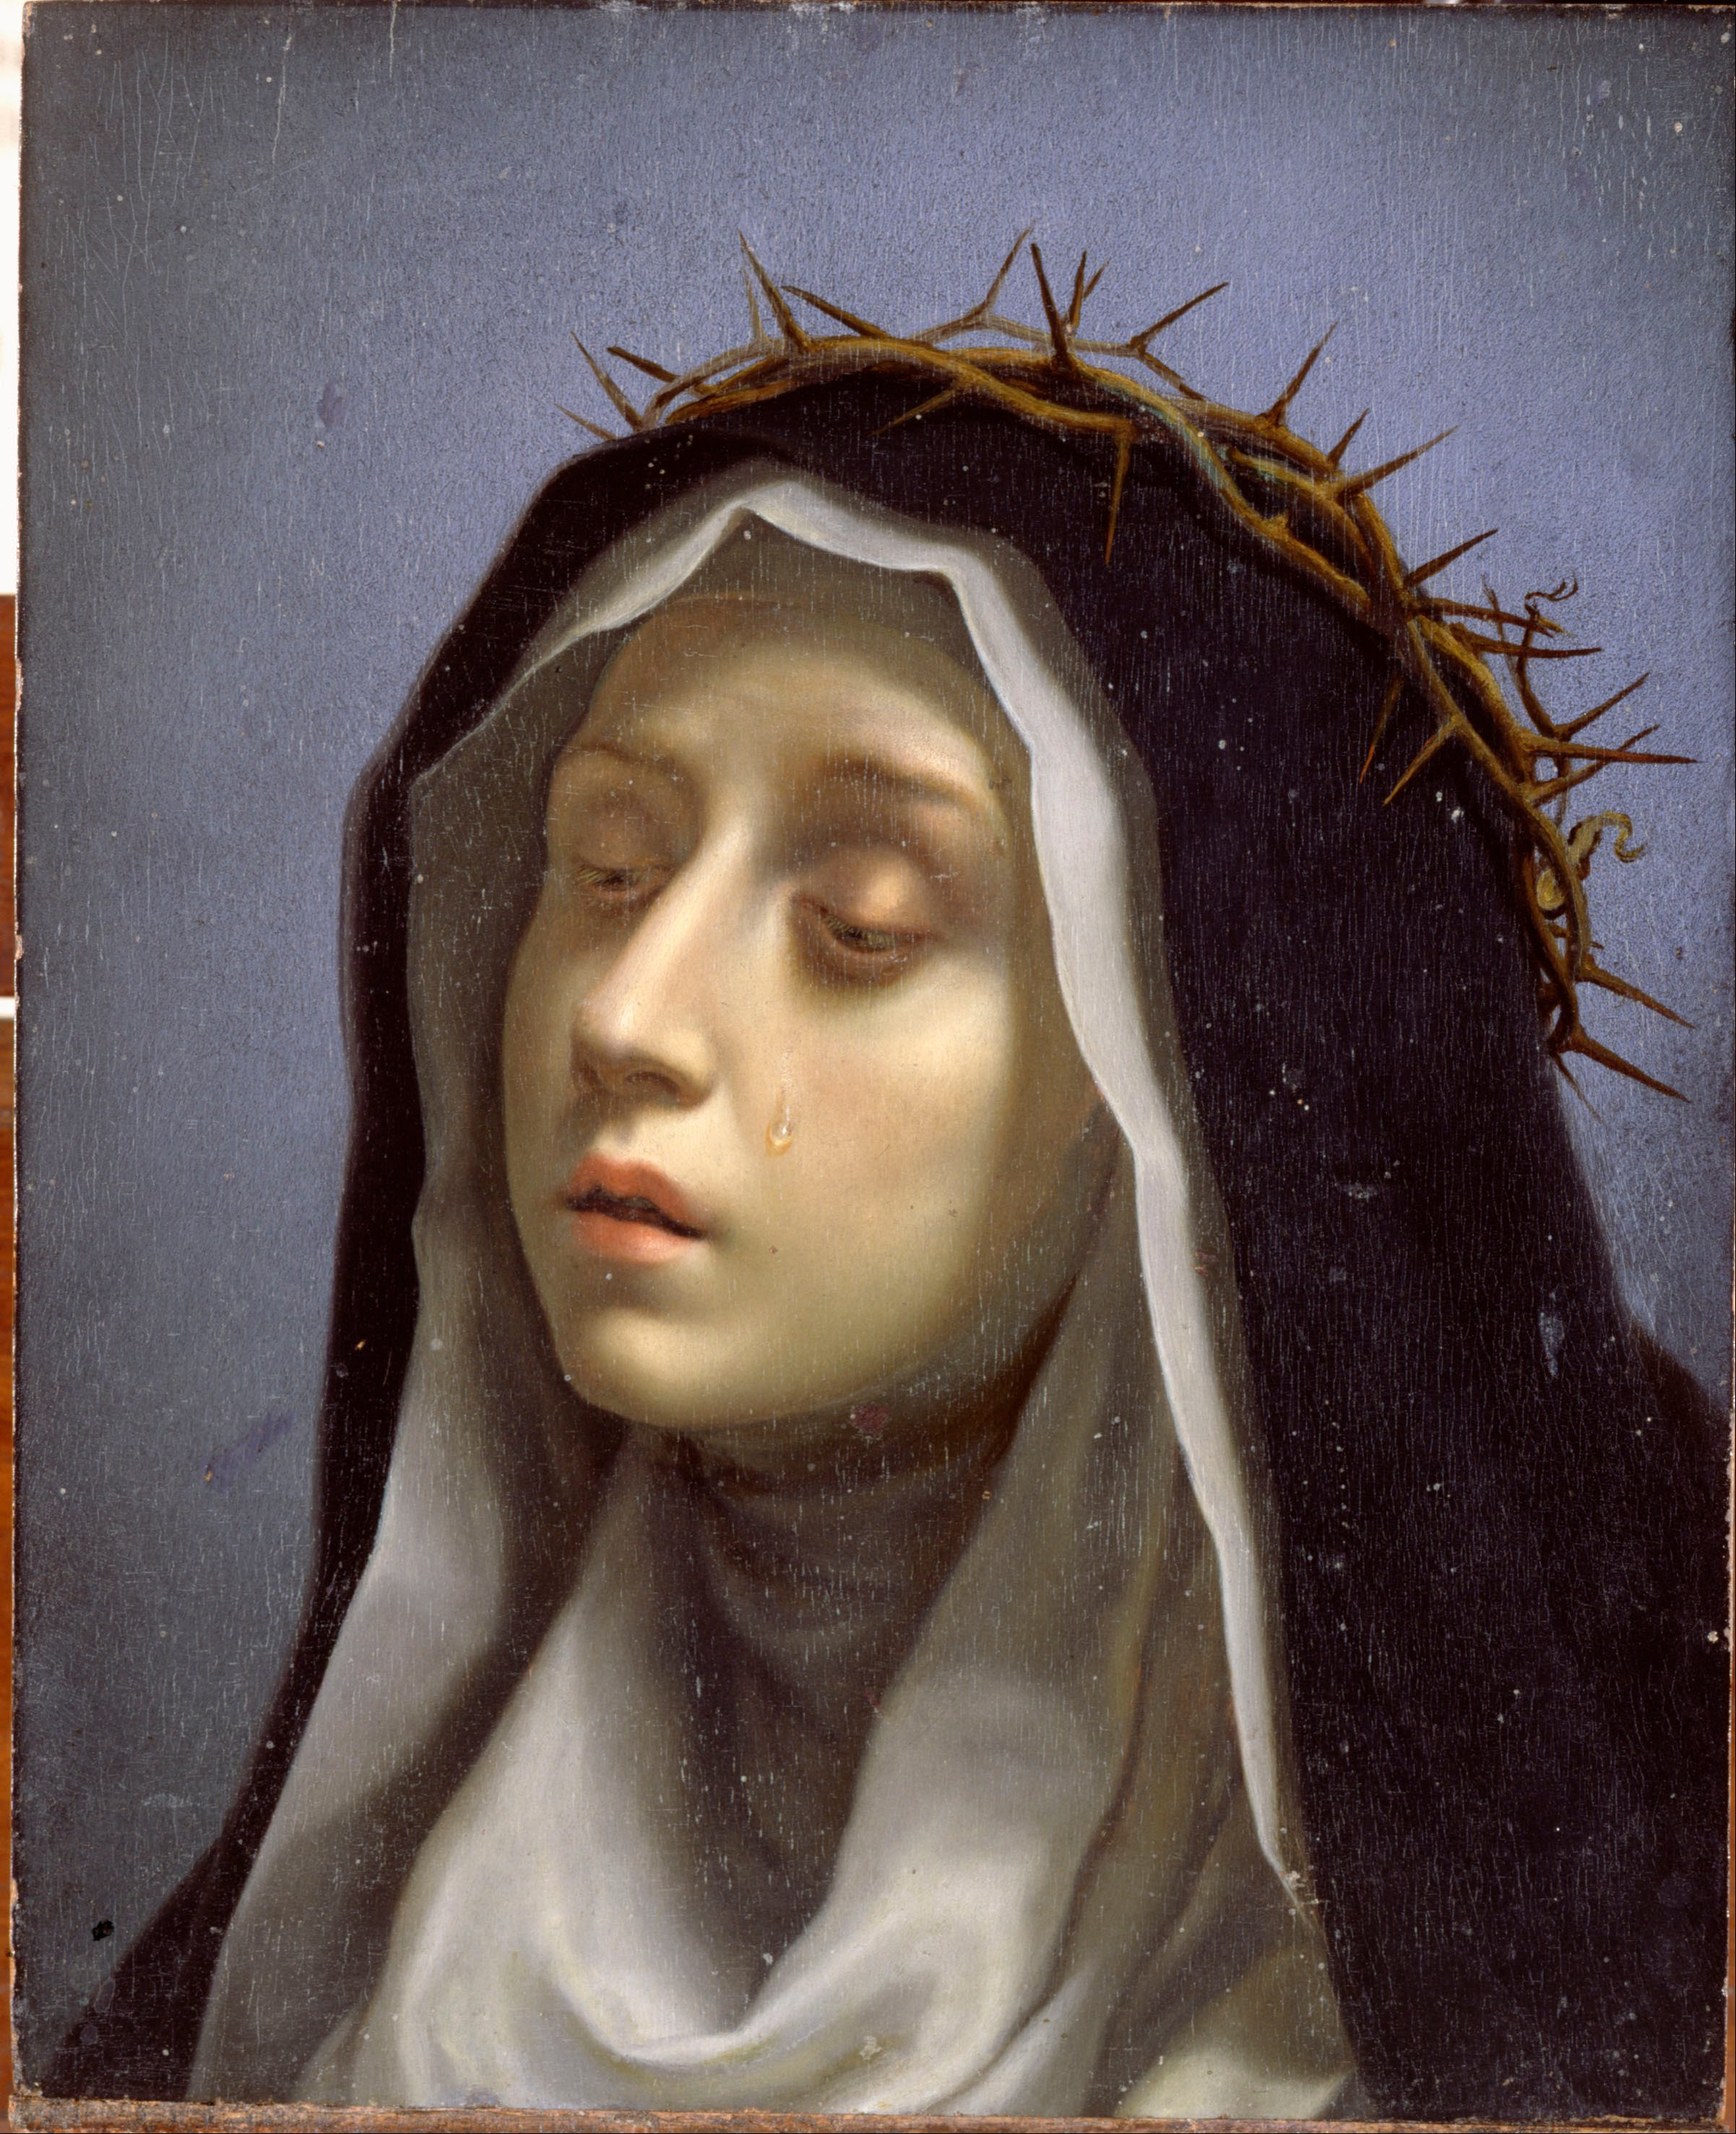 st catherine of siena essay Read this religion essay and over 88,000 other research documents saint catherine of siena saint catherine of siena was born in 1347 in siena, italy she was the.